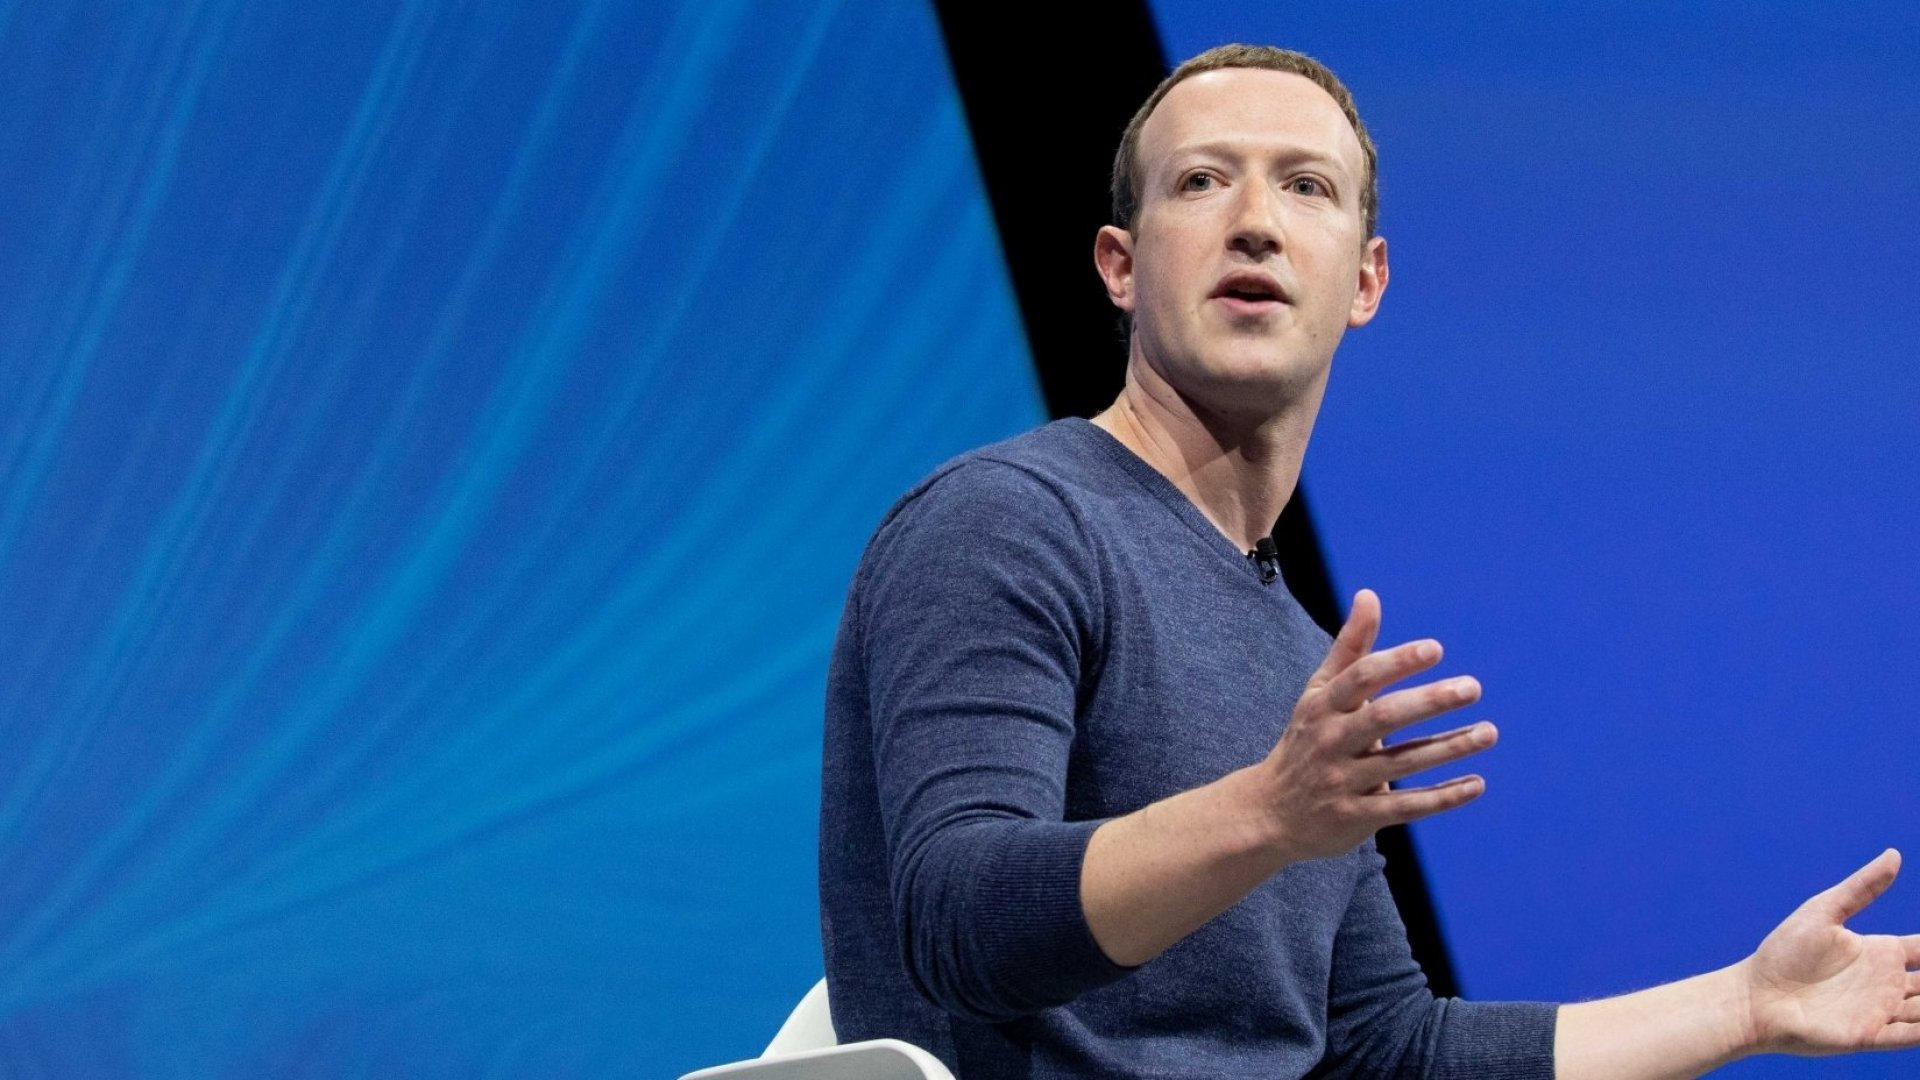 Here's the 1 Brutal Truth About Mark Zuckerberg Nobody Wants to Admit